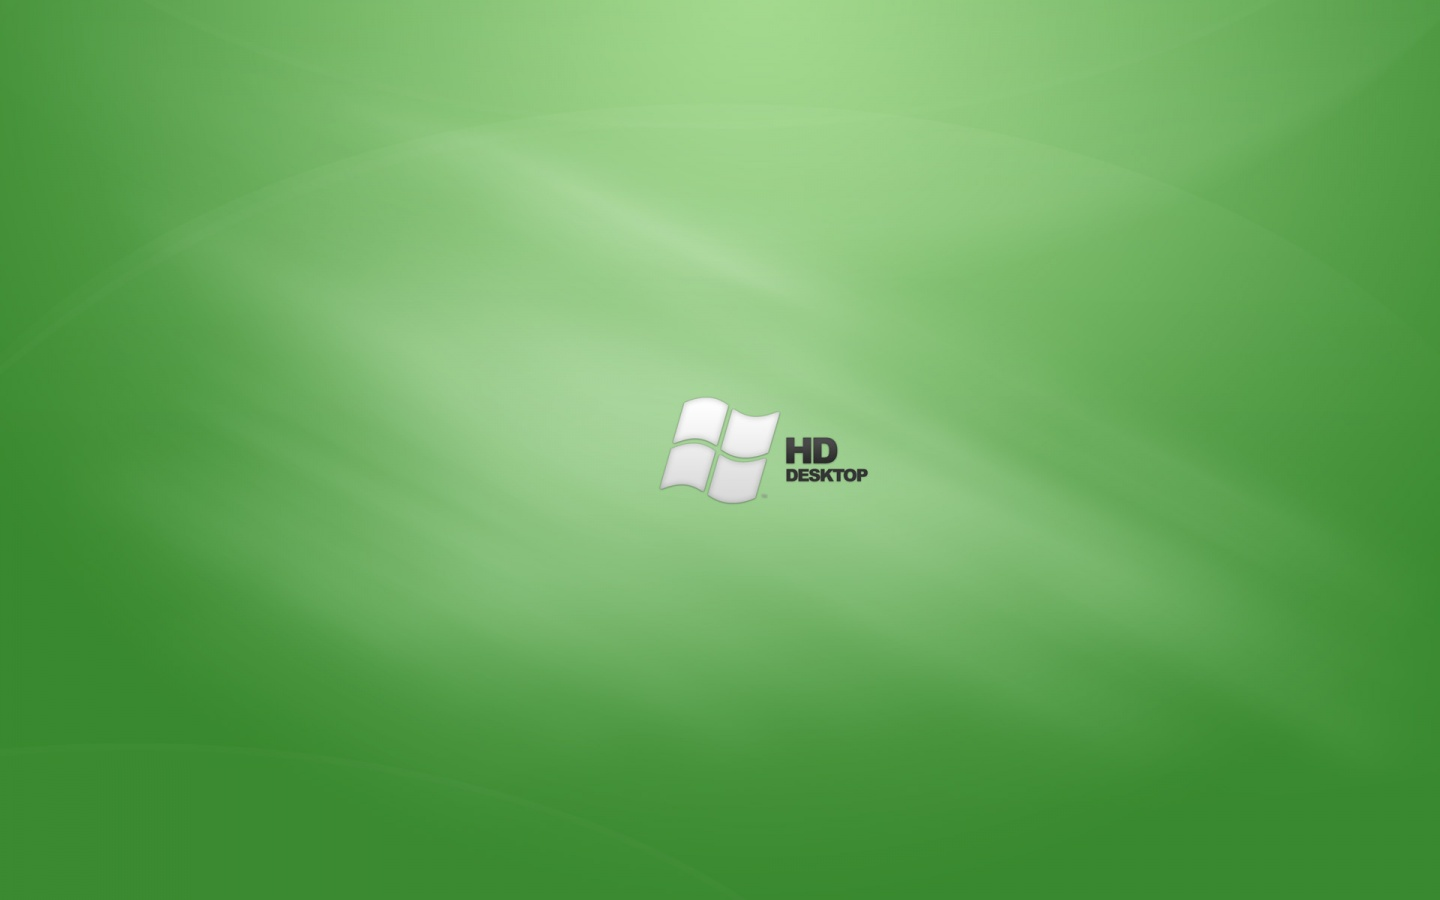 1440x900 Green HD Desktop desktop PC and Mac wallpaper 1440x900